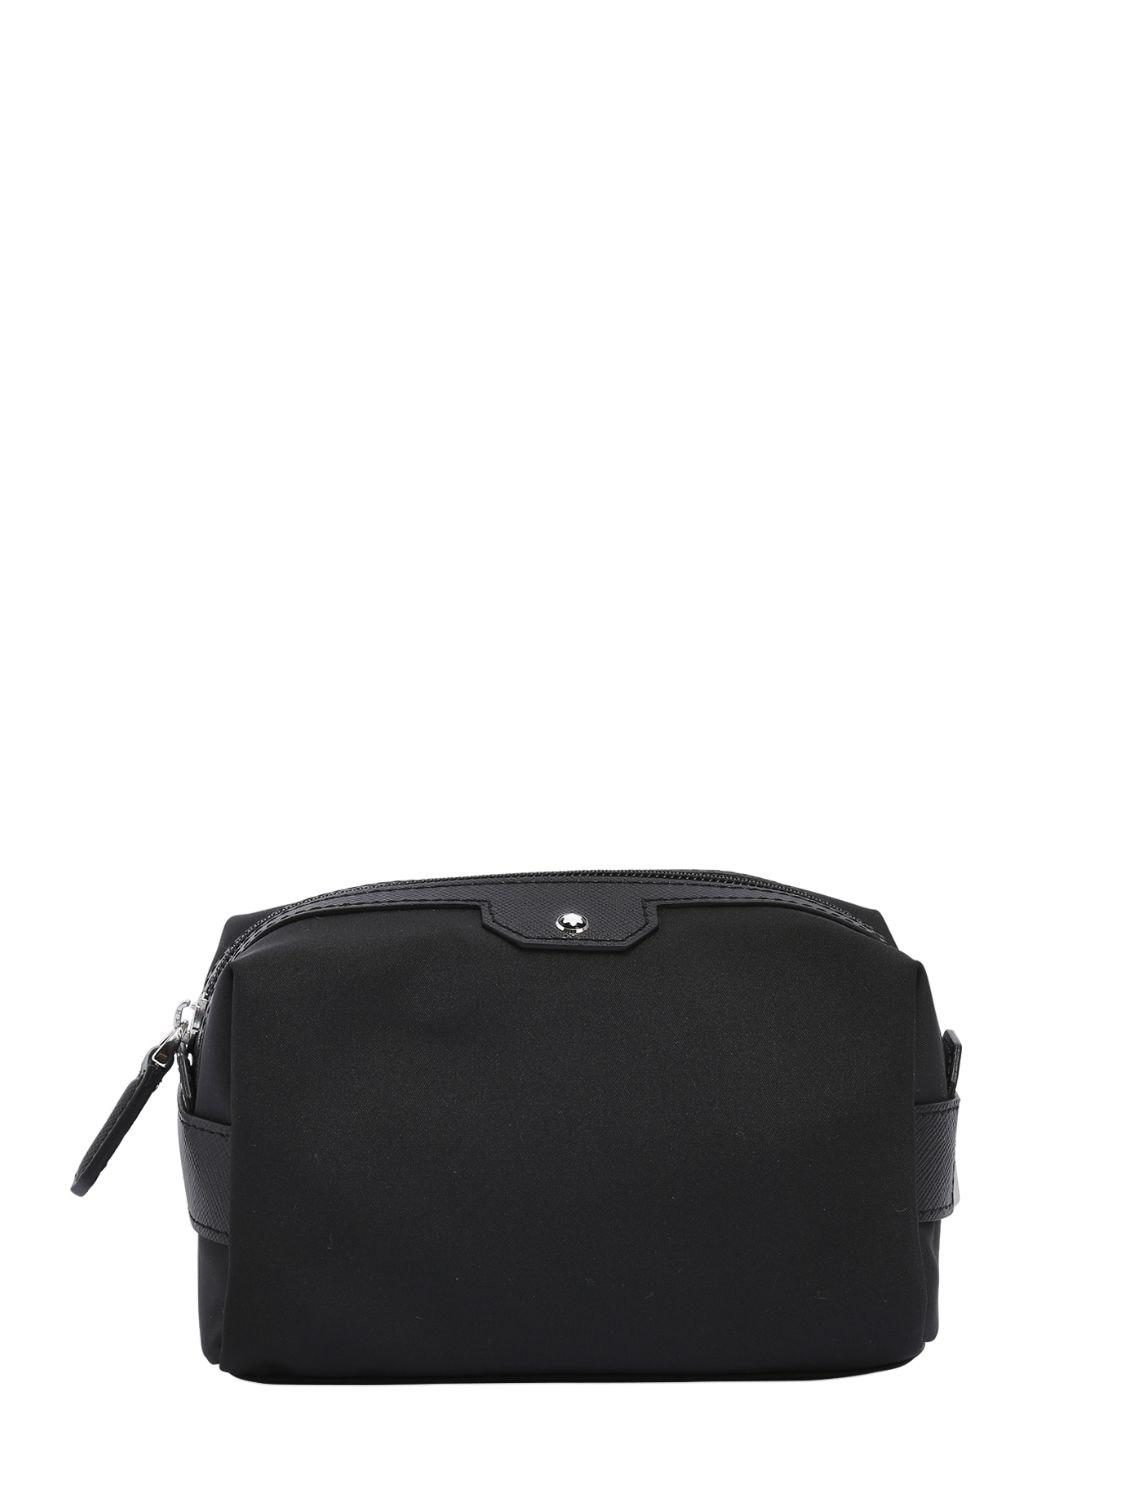 8ccd61320bb6b Montblanc Small Sartorial Jet Toiletry Bag in Black for Men - Save ...